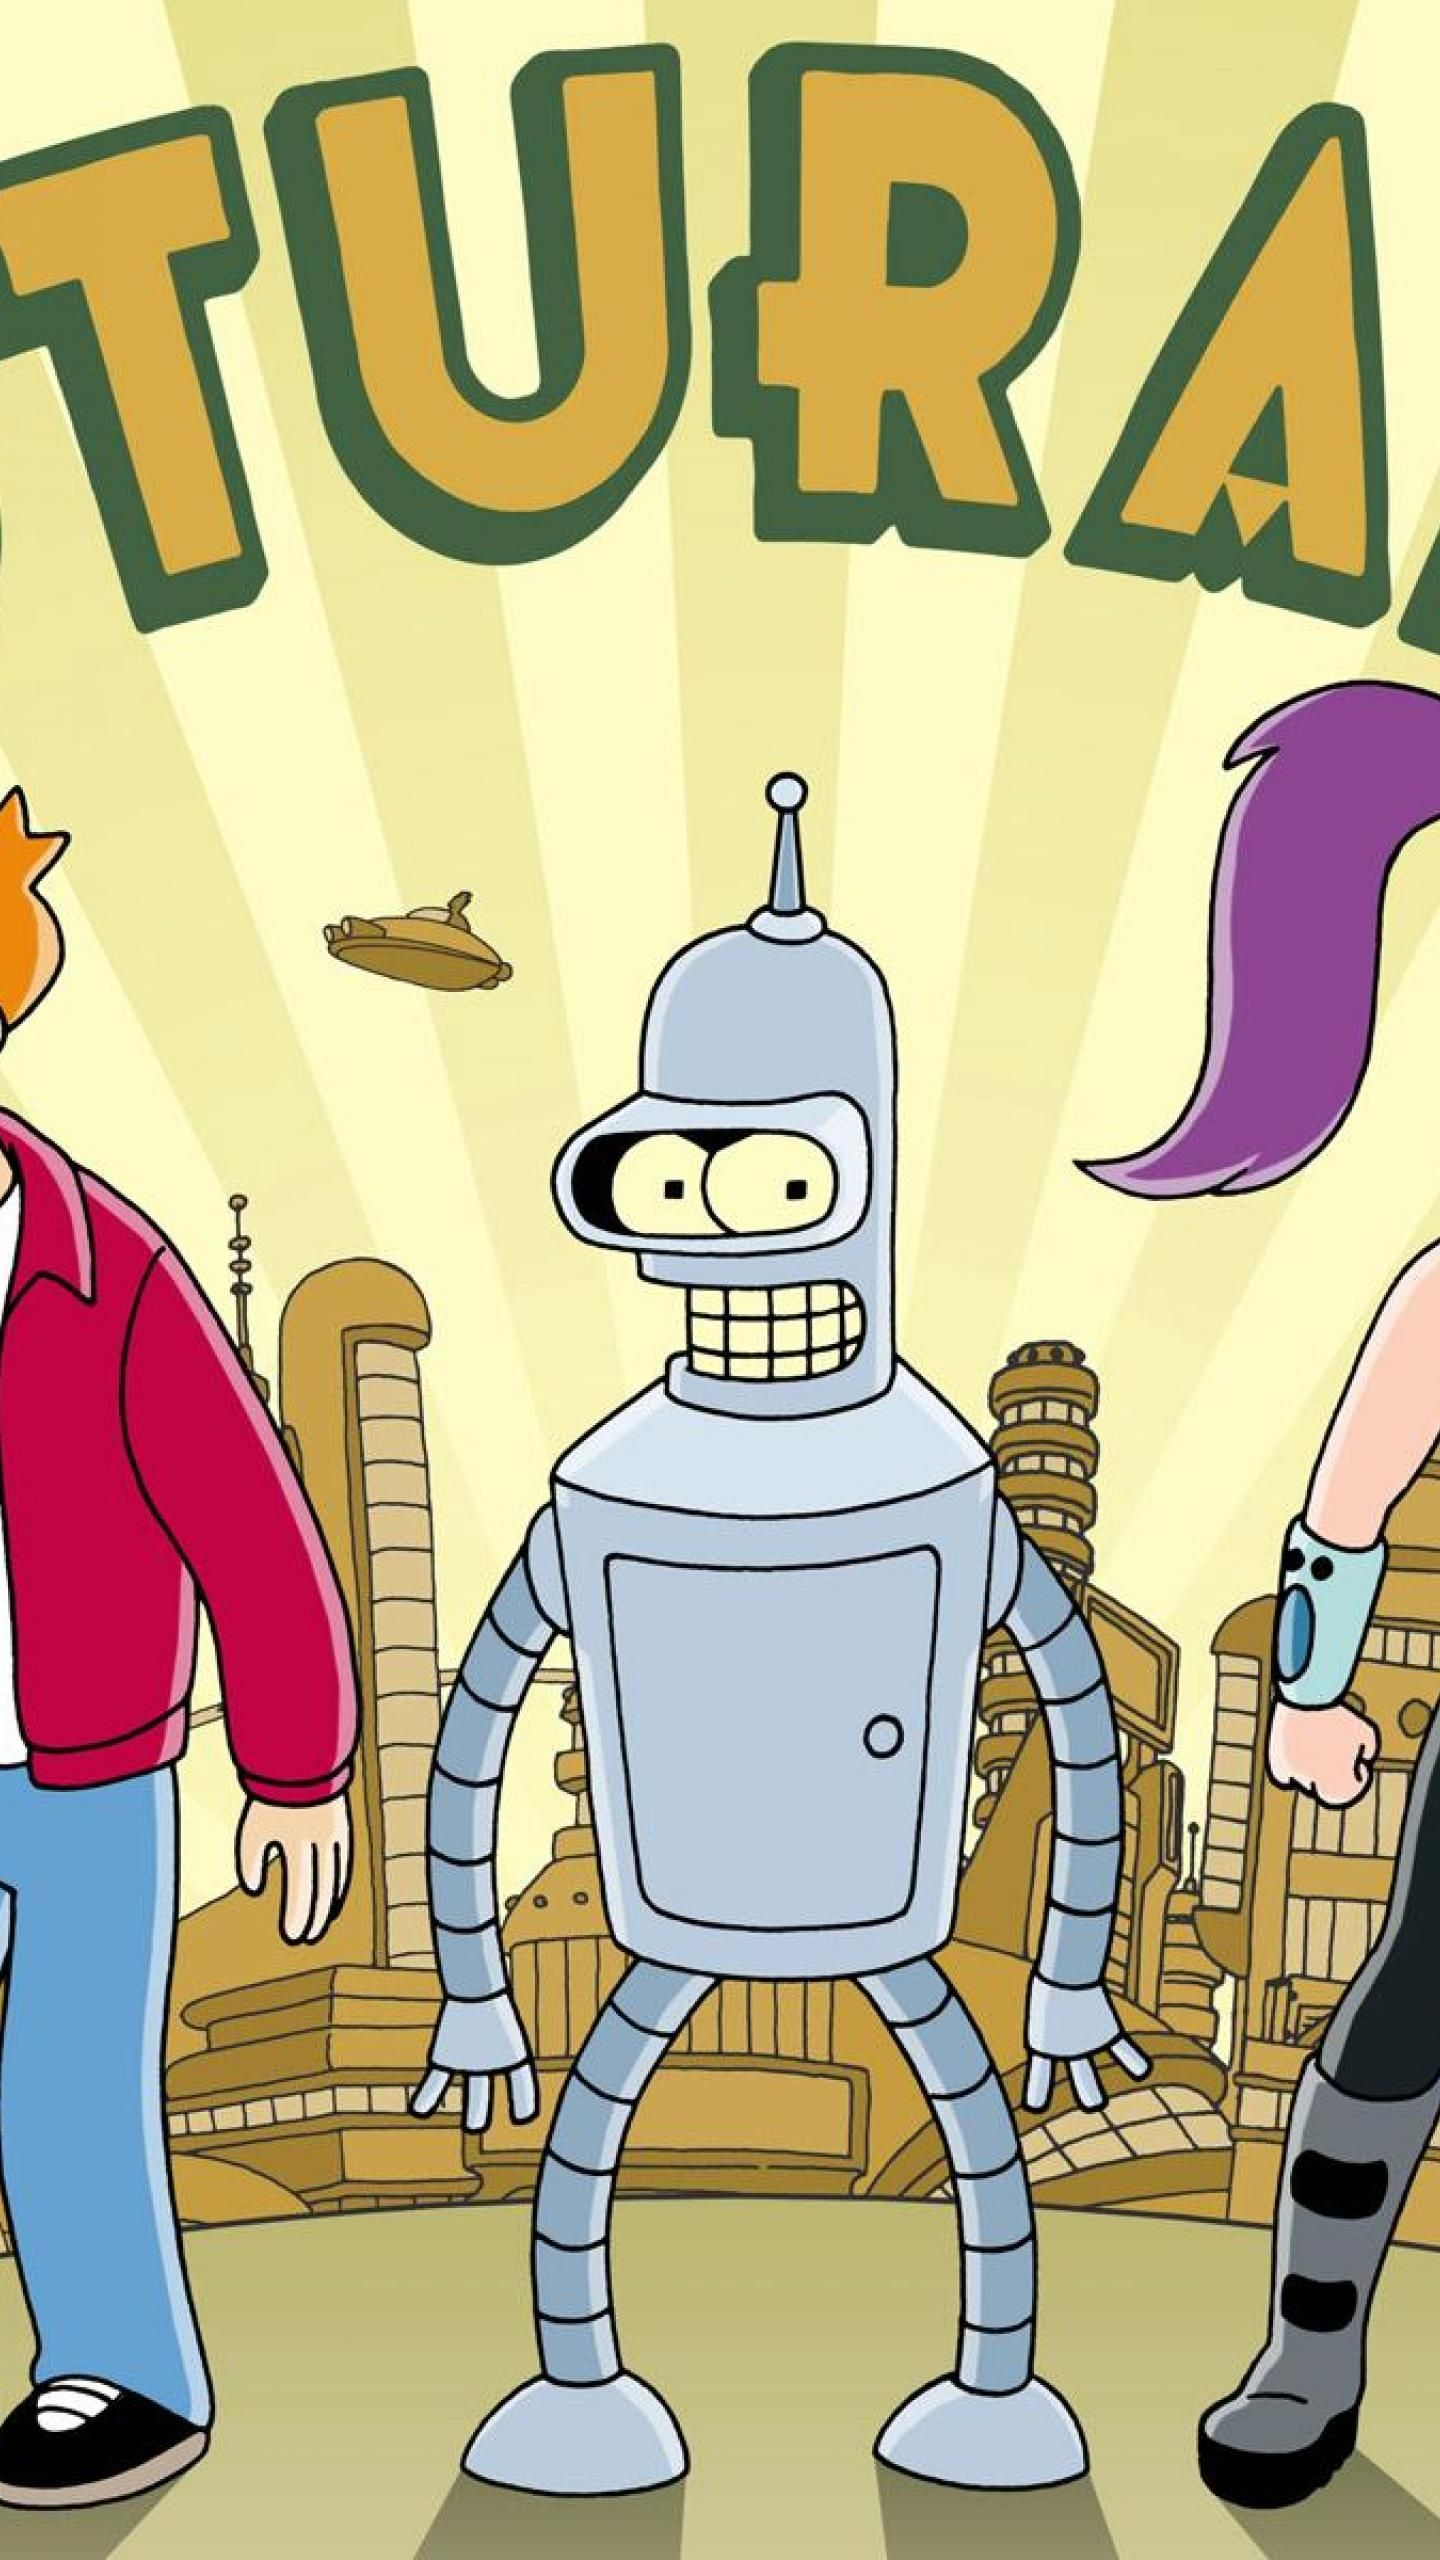 Wallpapers animation, Factory, line, Leela, Philip J Fry